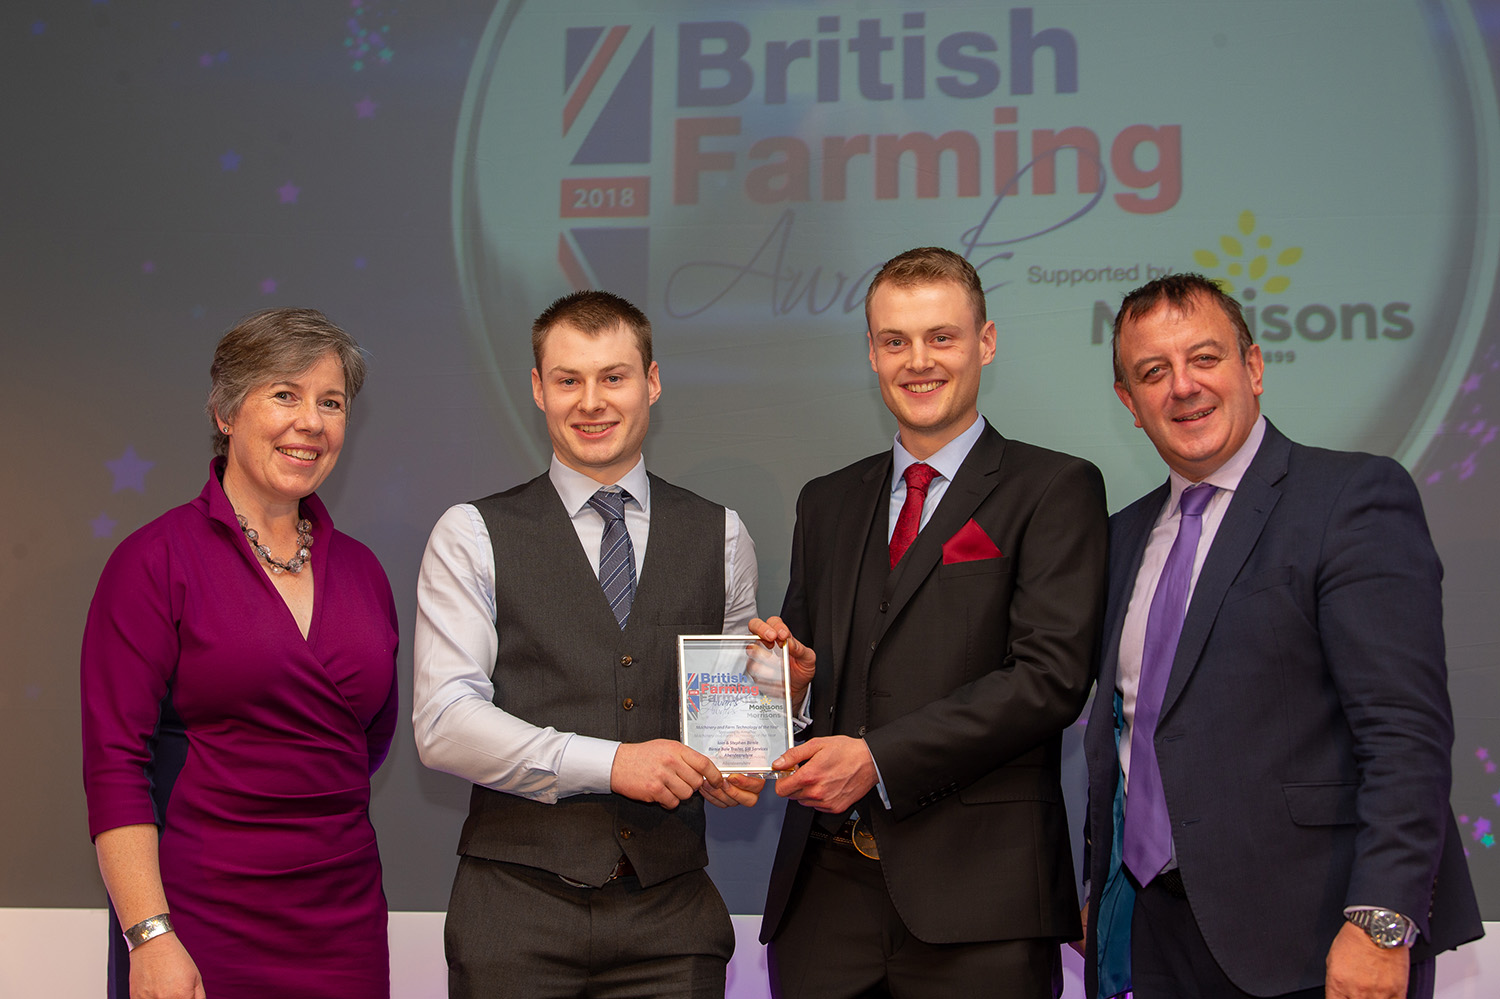 Machinery and Farm Technology of the Year, sponsored by Armatrac